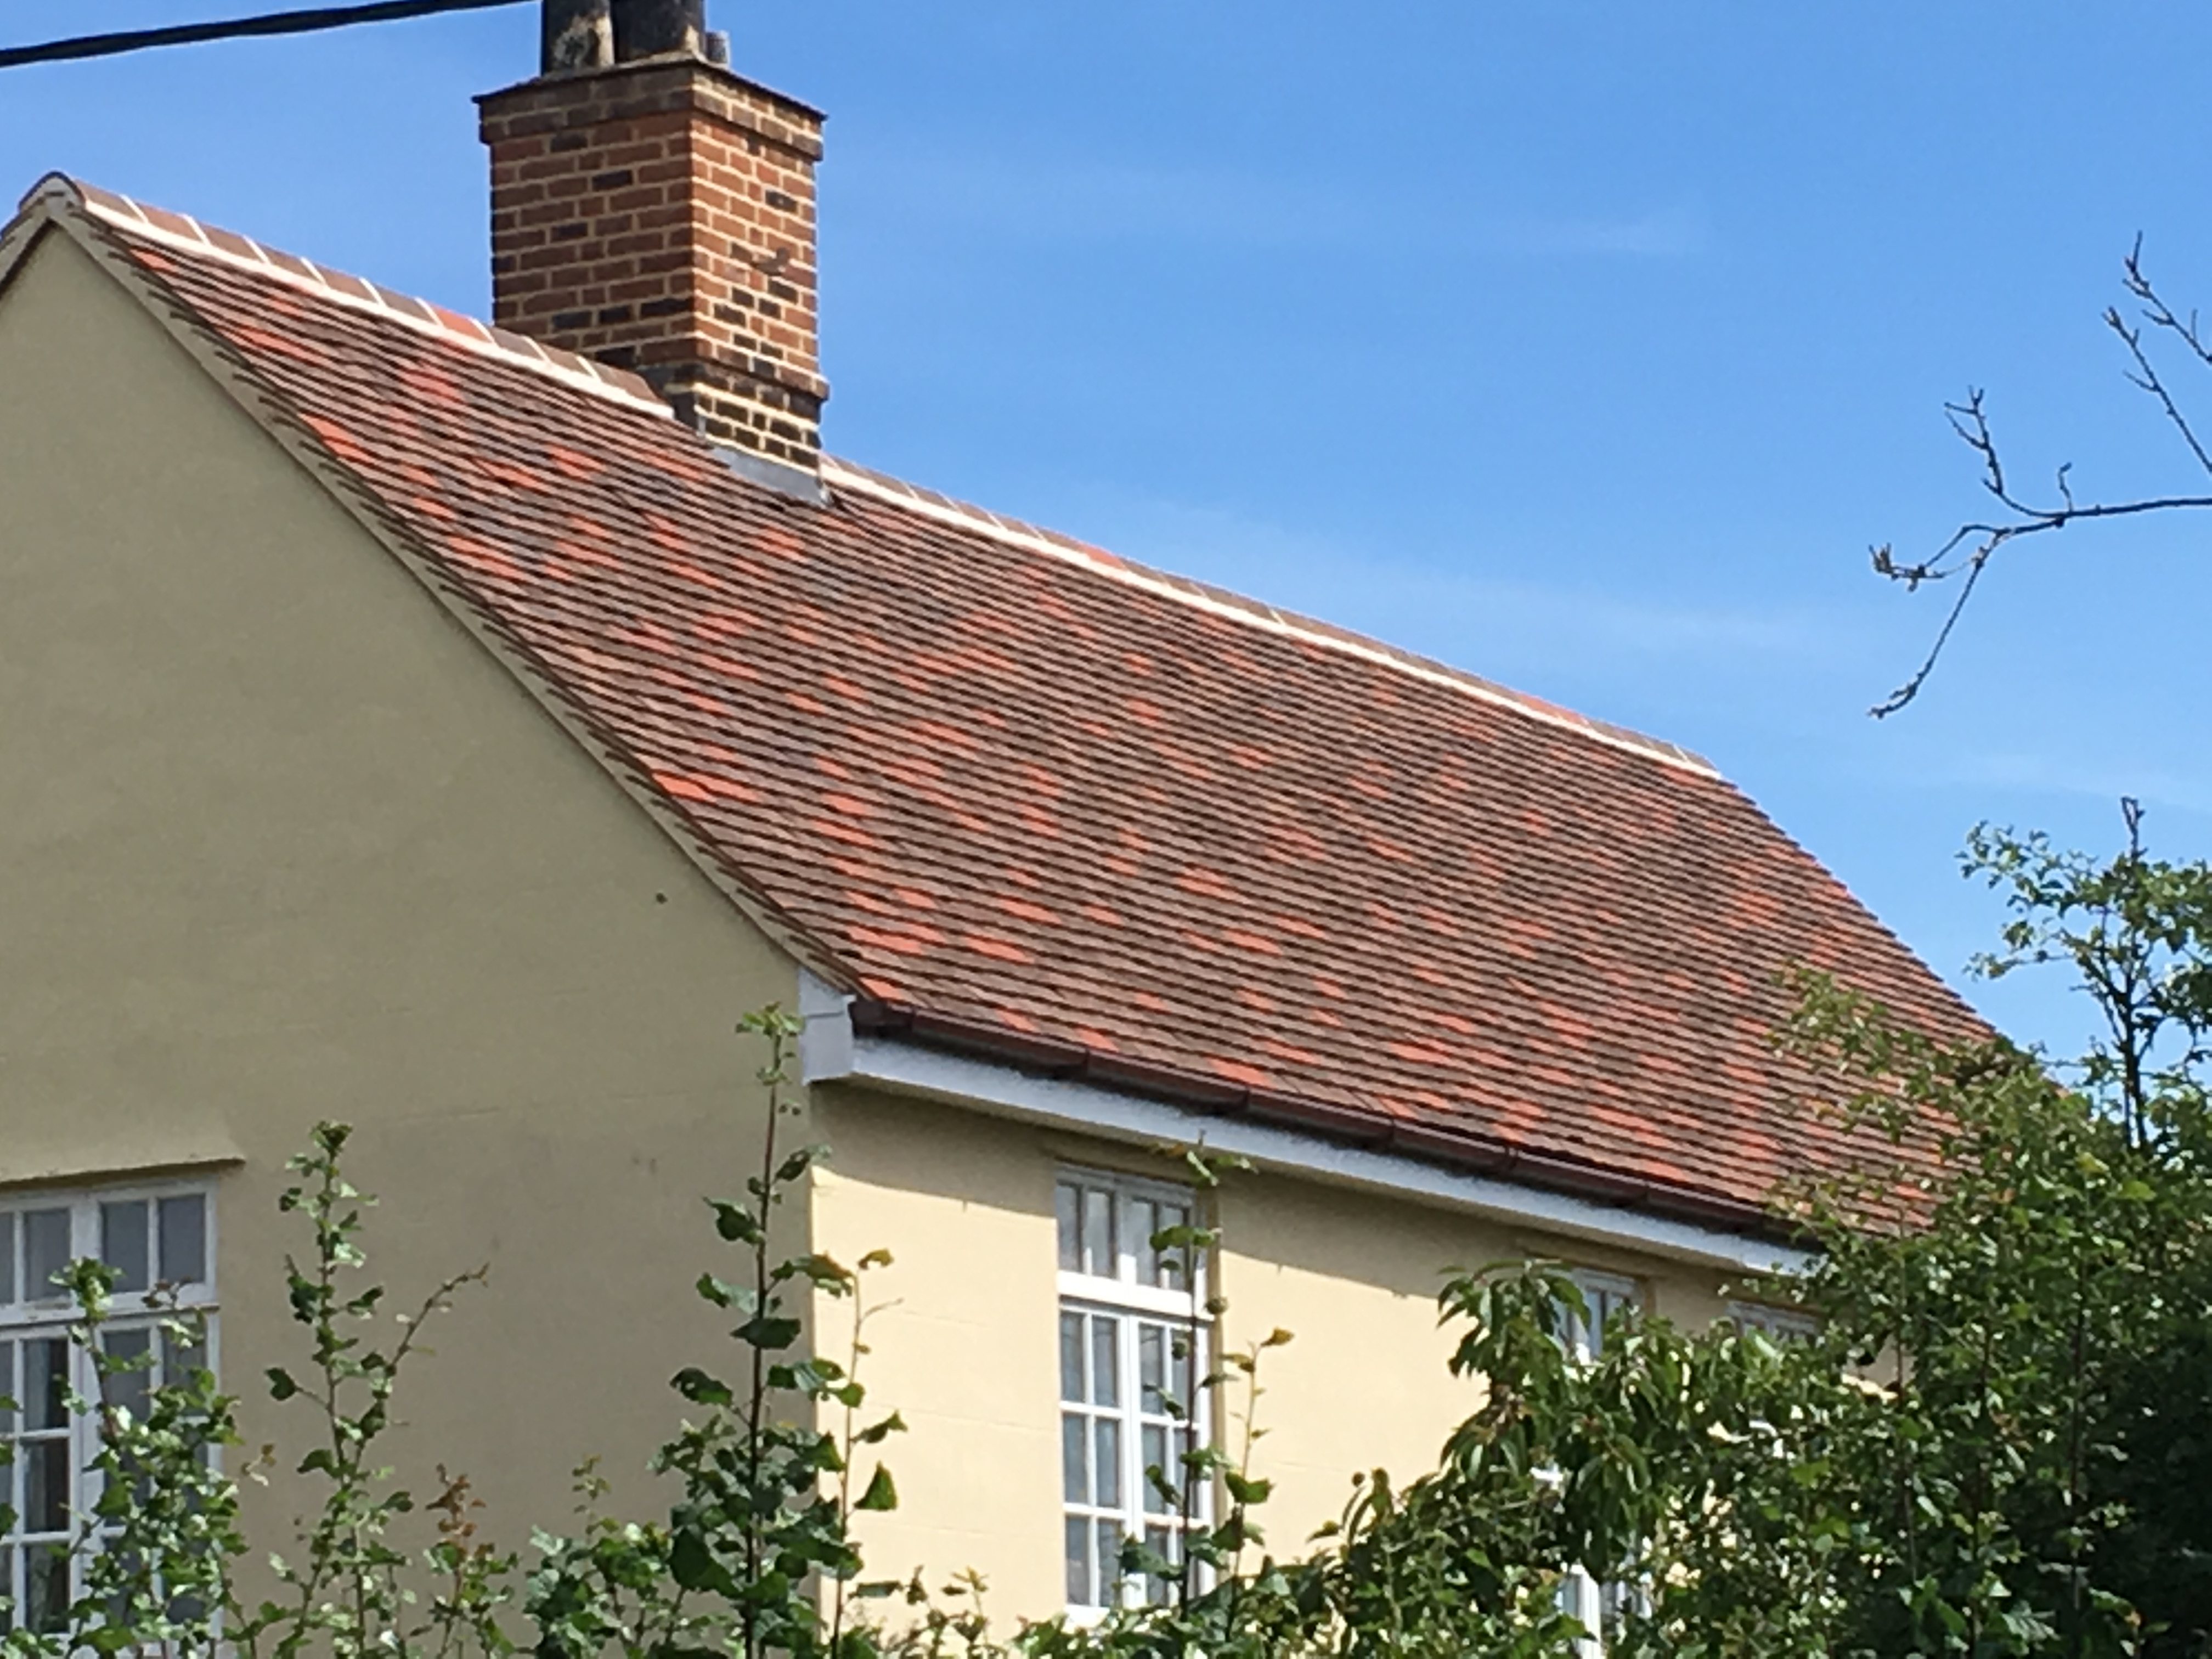 SIGnature Handmade Clay Tiles - Chartham Red, Holmbury Blend